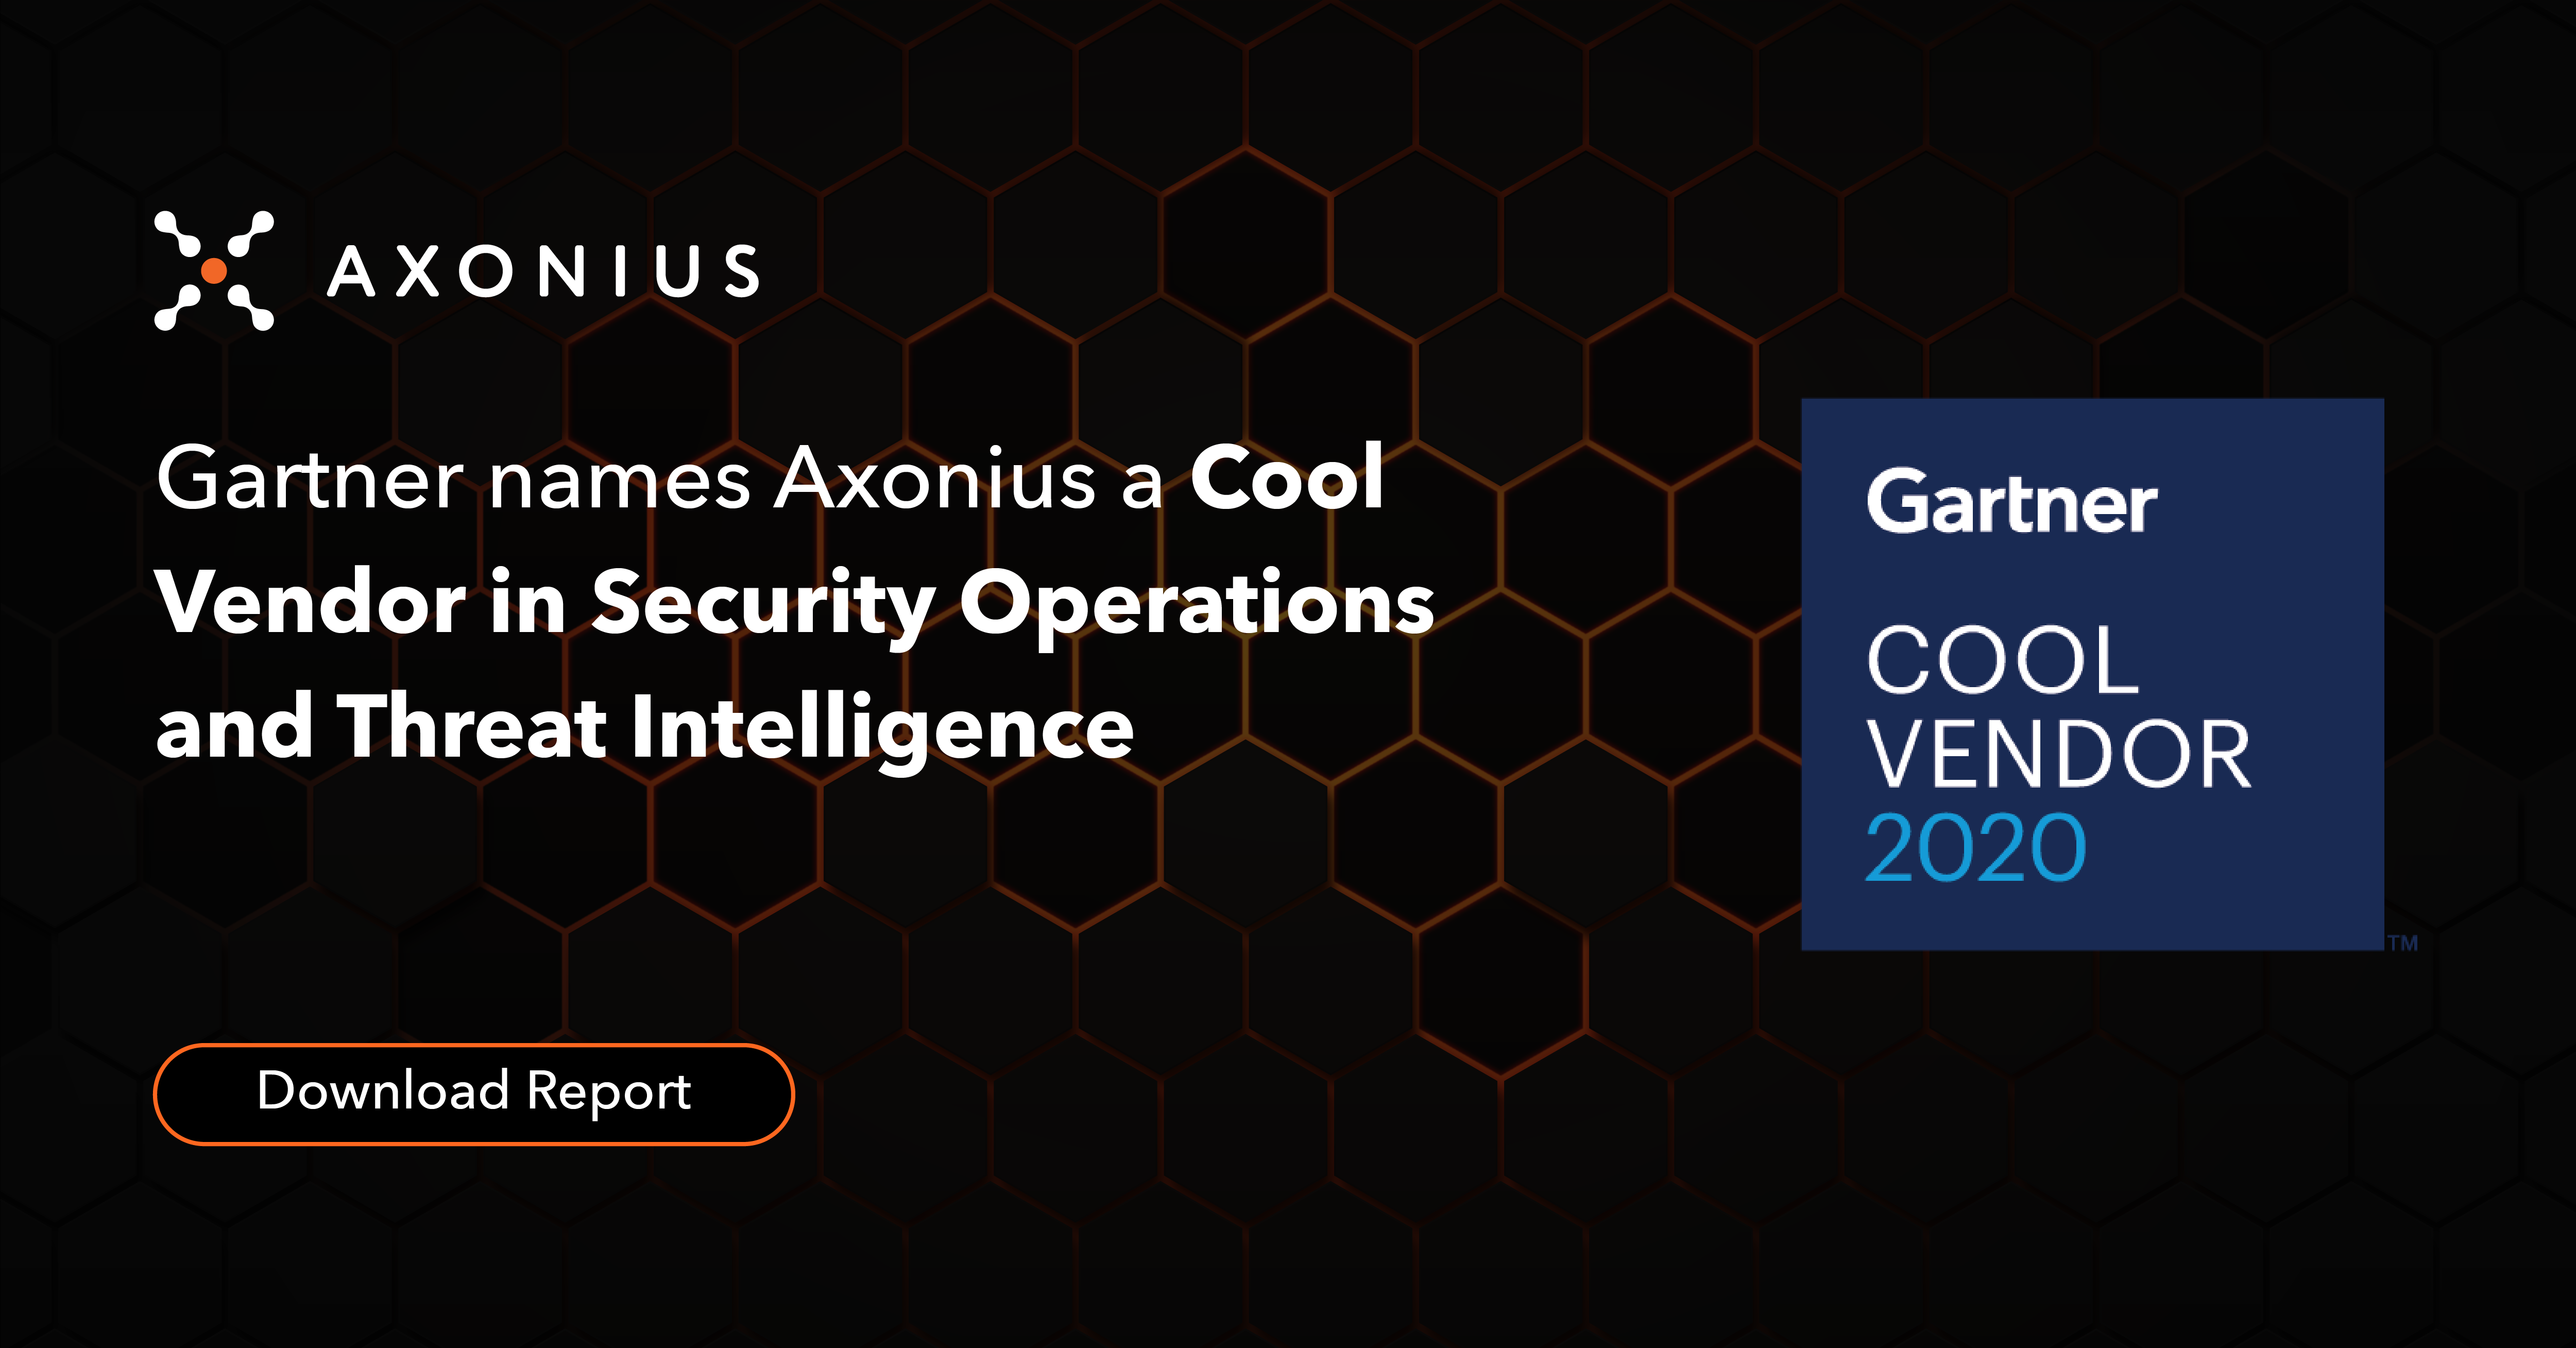 Axonius named Gartner Cool Vendor Security Operations and Threat Intelligence 2020